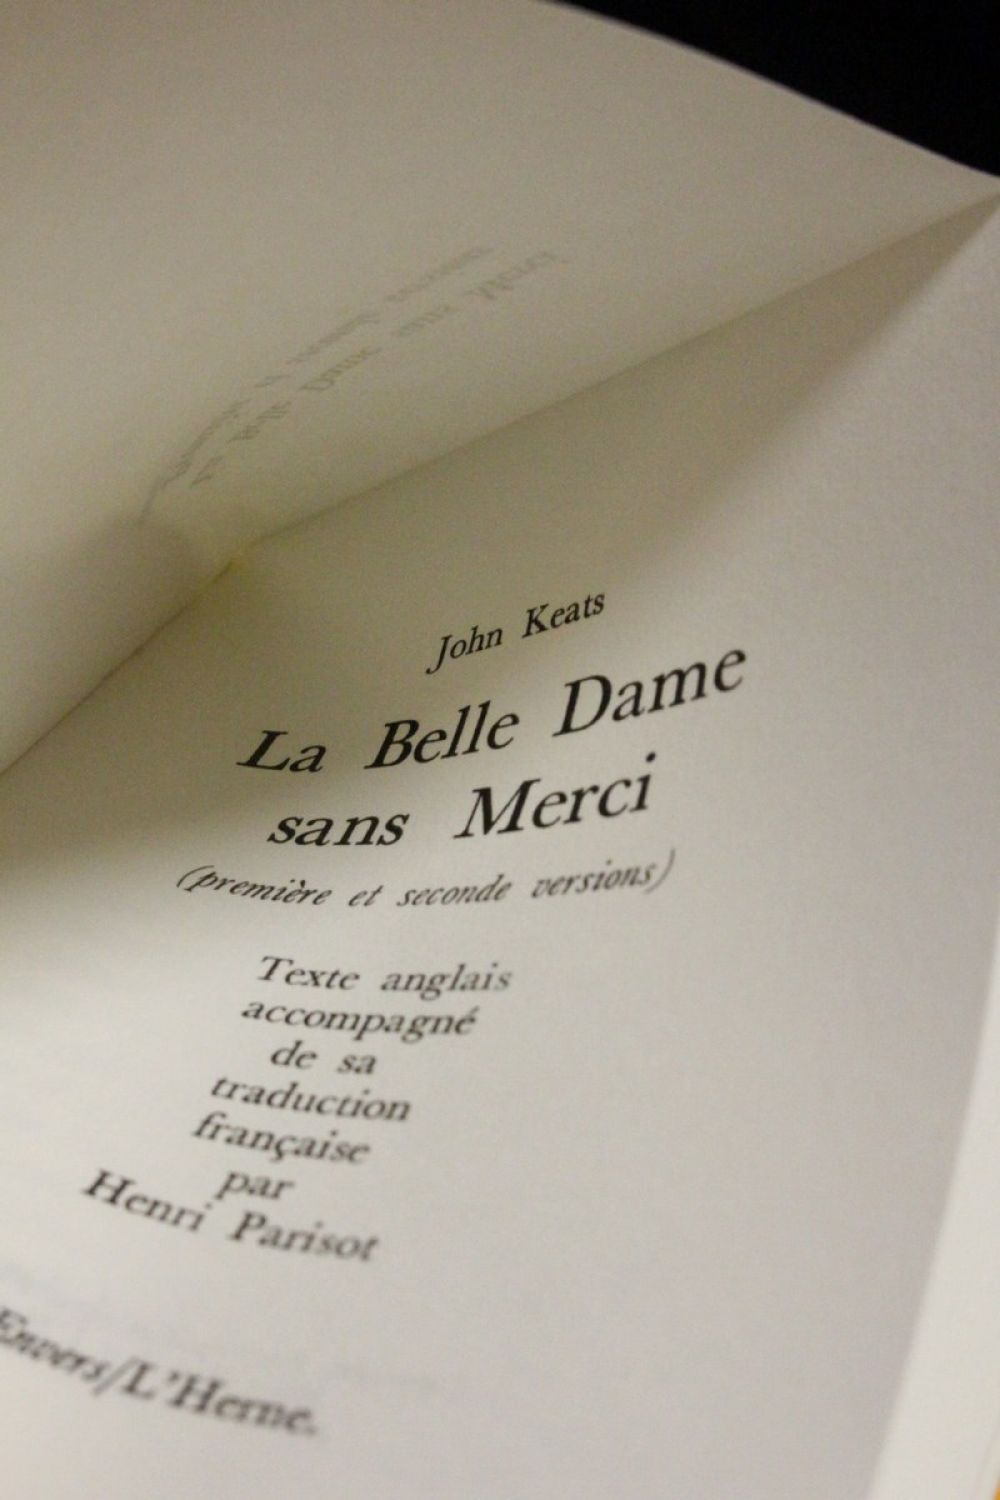 a poem full of imagination dreams romanticism and mystery in la belle dame sans merci by john keats Need writing la bell dame sans merci essay use our paper writing services or get access to database of 35 free essays samples about la bell dame sans merci signup now and have a+ grades.